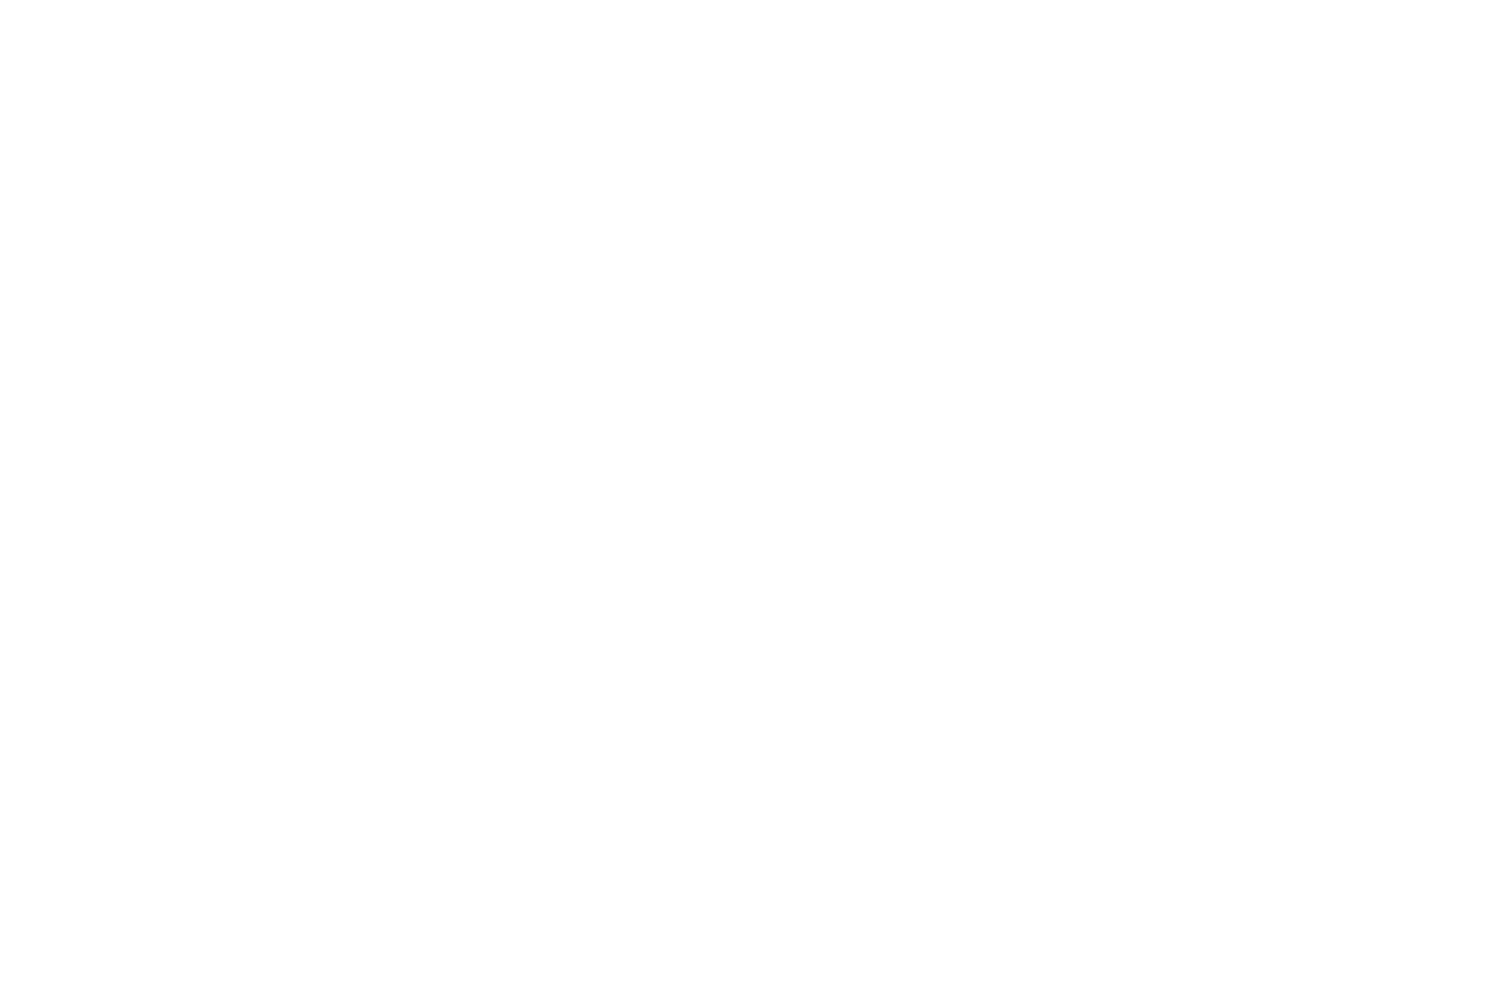 Riley Lewis Photography